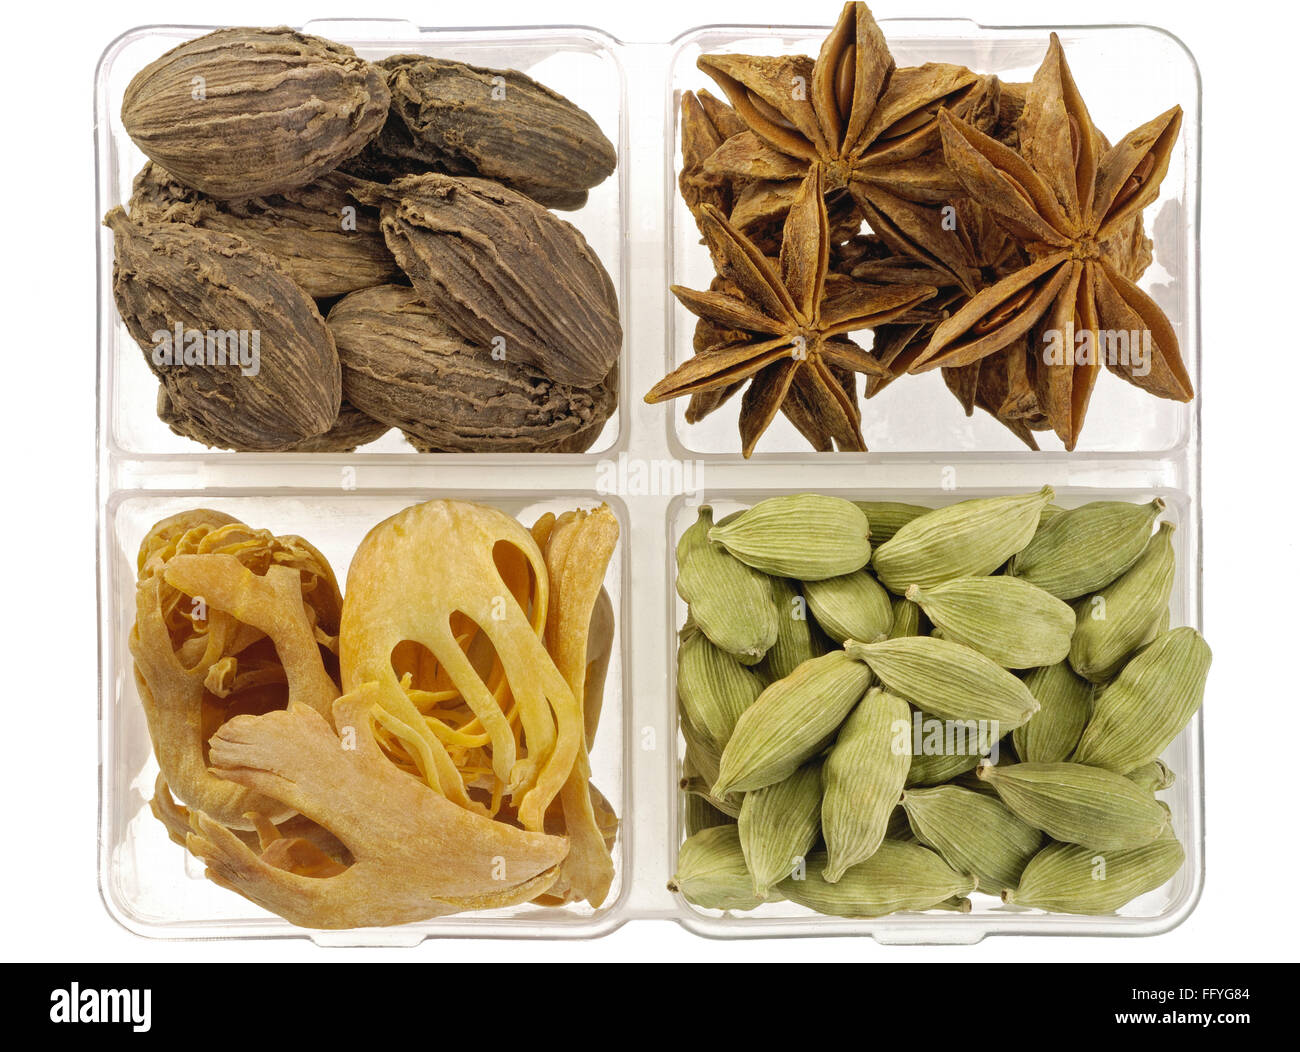 Spices big cardamom star anise dried mace blades India Stock